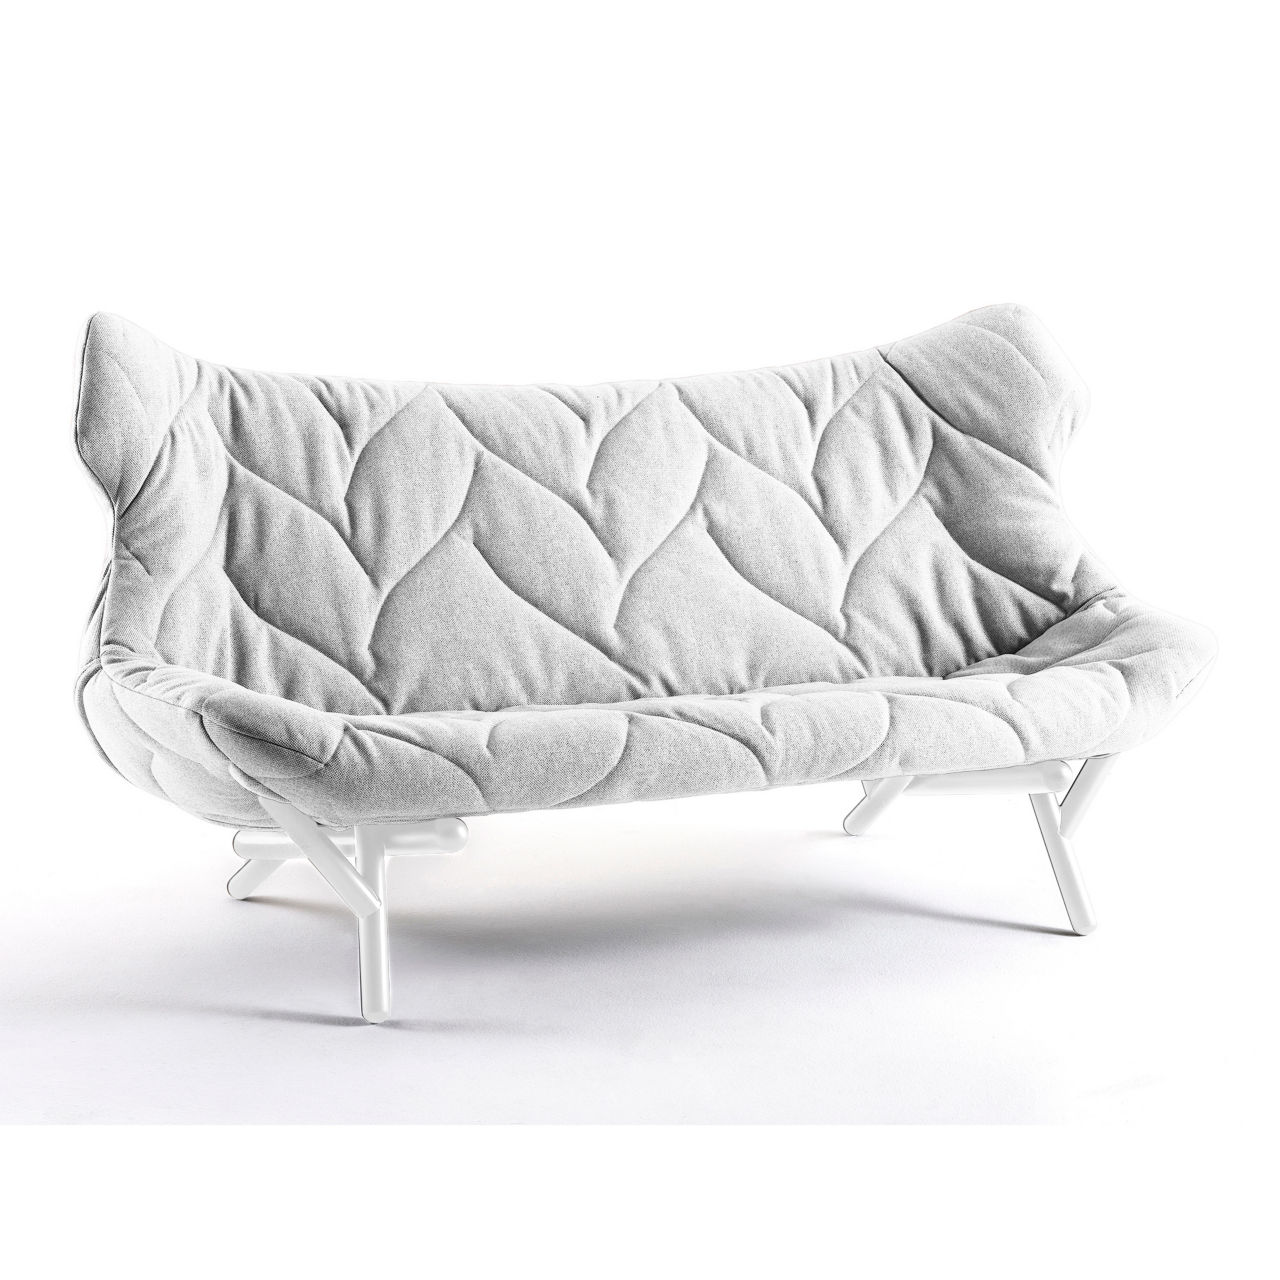 Foliage Sofa in White by Kartell